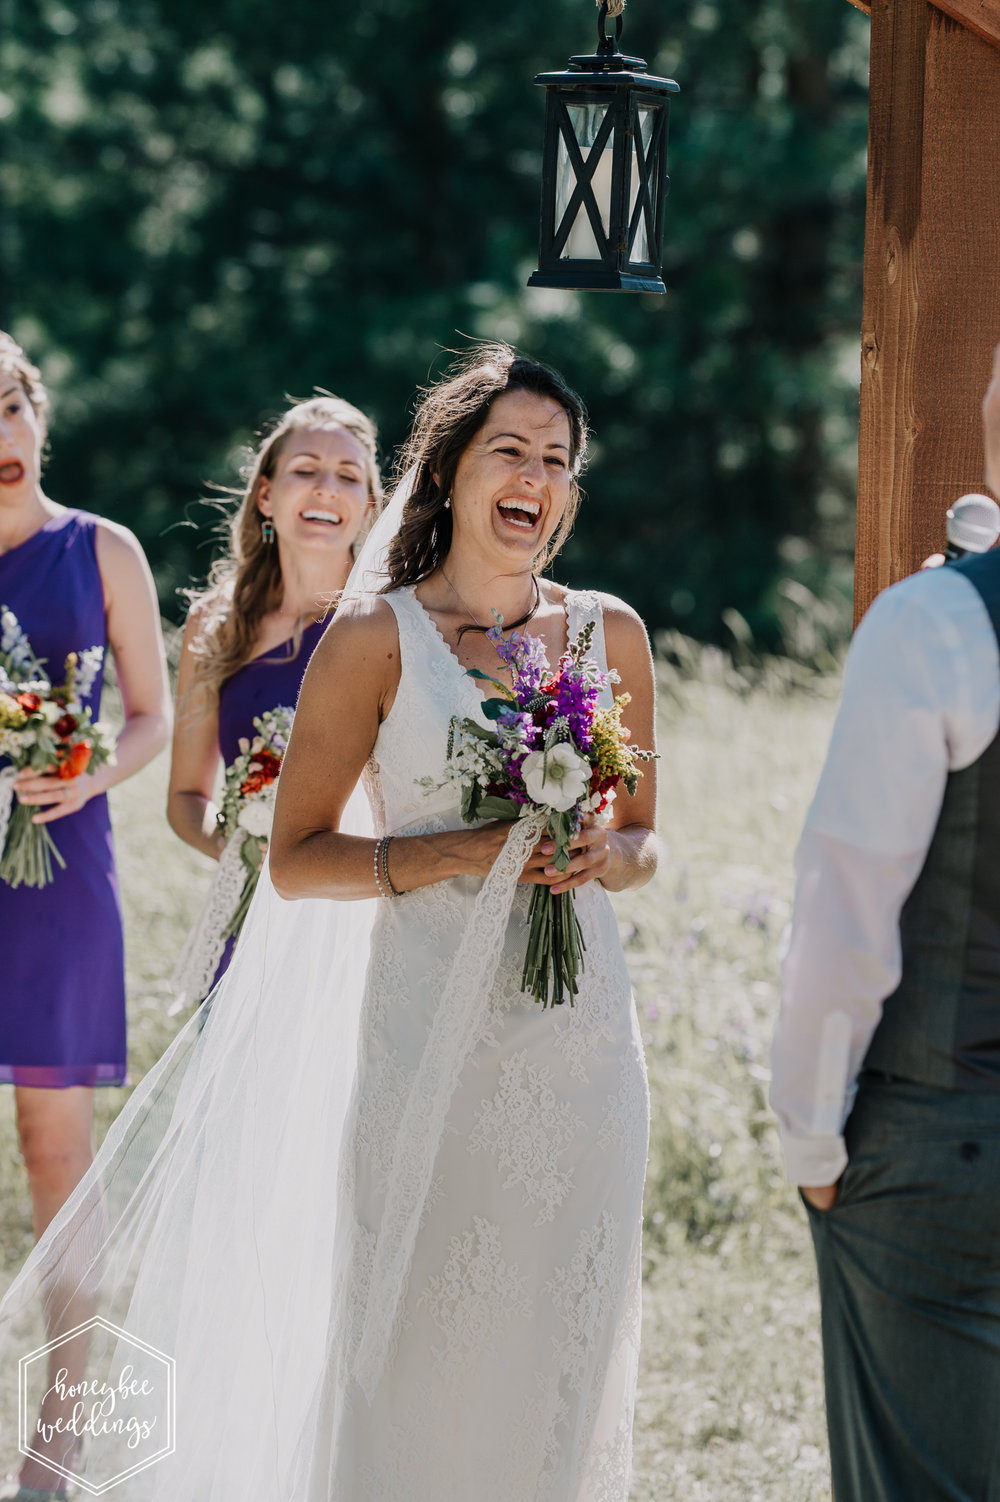 316 White Raven Wedding_Montana Wedding Photographer_Honeybee Weddings_ Meghan Maloney + Arza Hammond 2018-8761.jpg